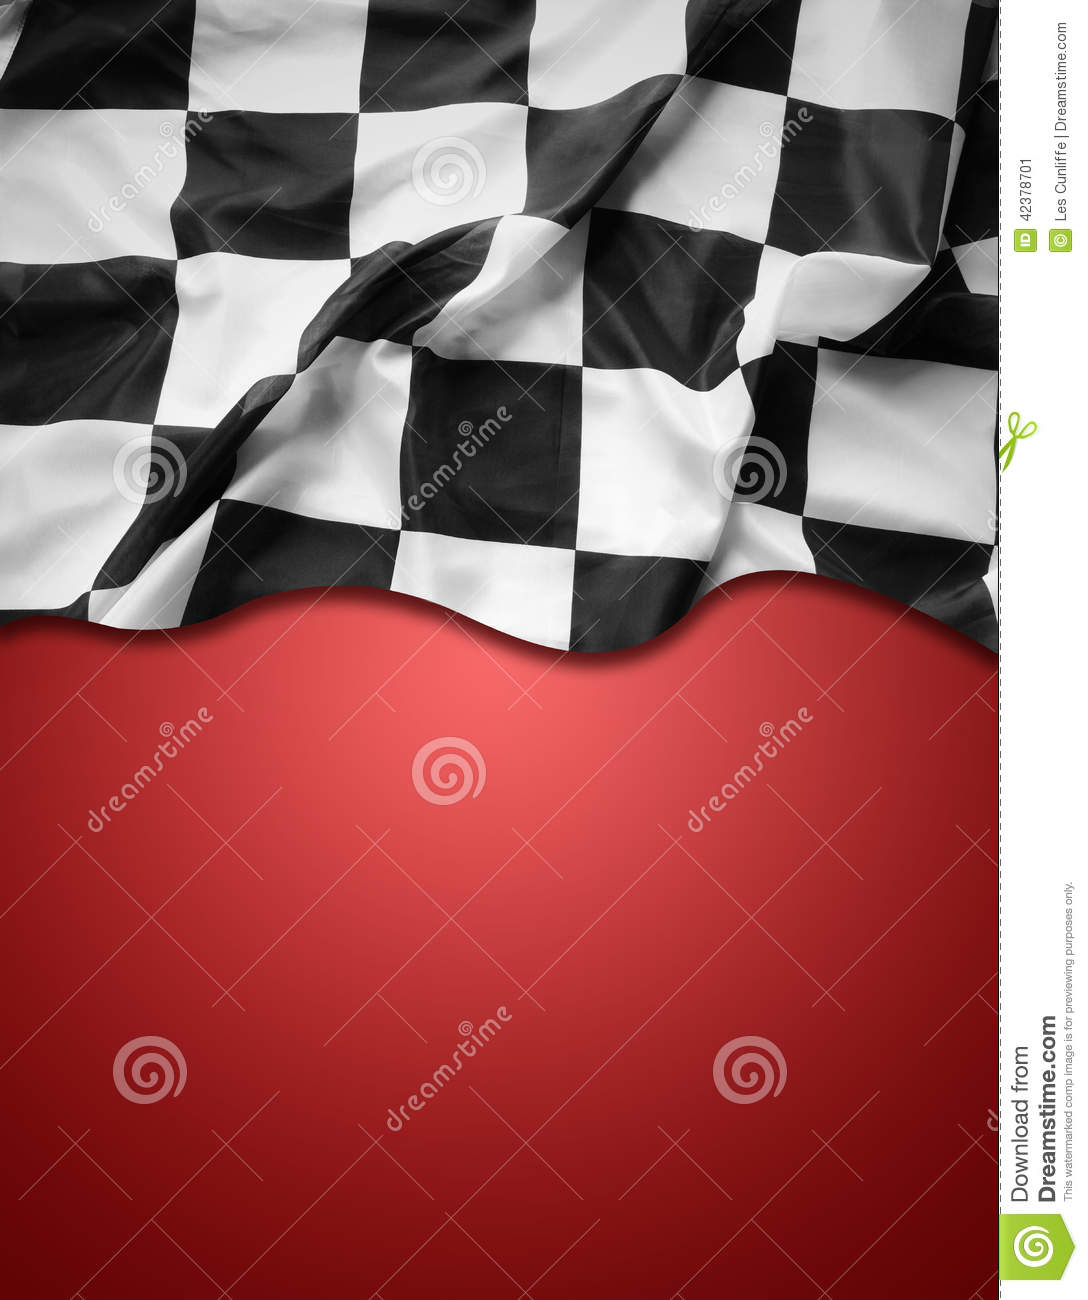 Checkered Flag Stock Photo - Image: 42378701